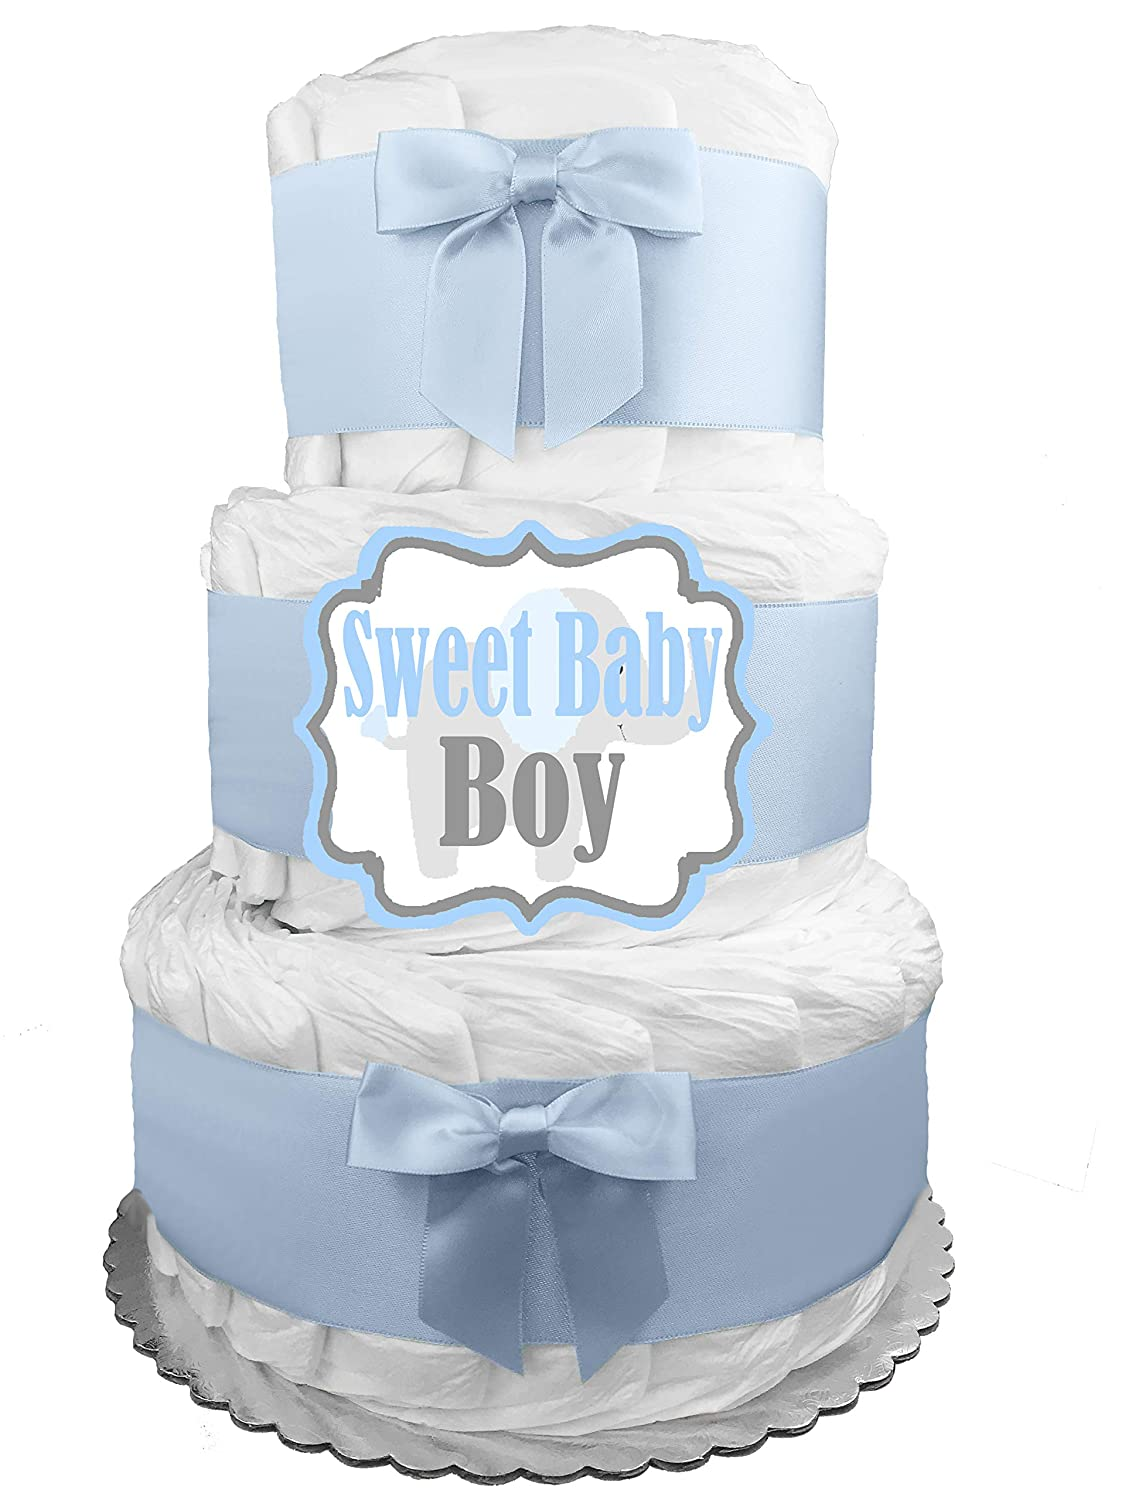 FREE POSTAGE!! 1 Tier Cream Neutral Nappy Cake  Baby Shower Gift